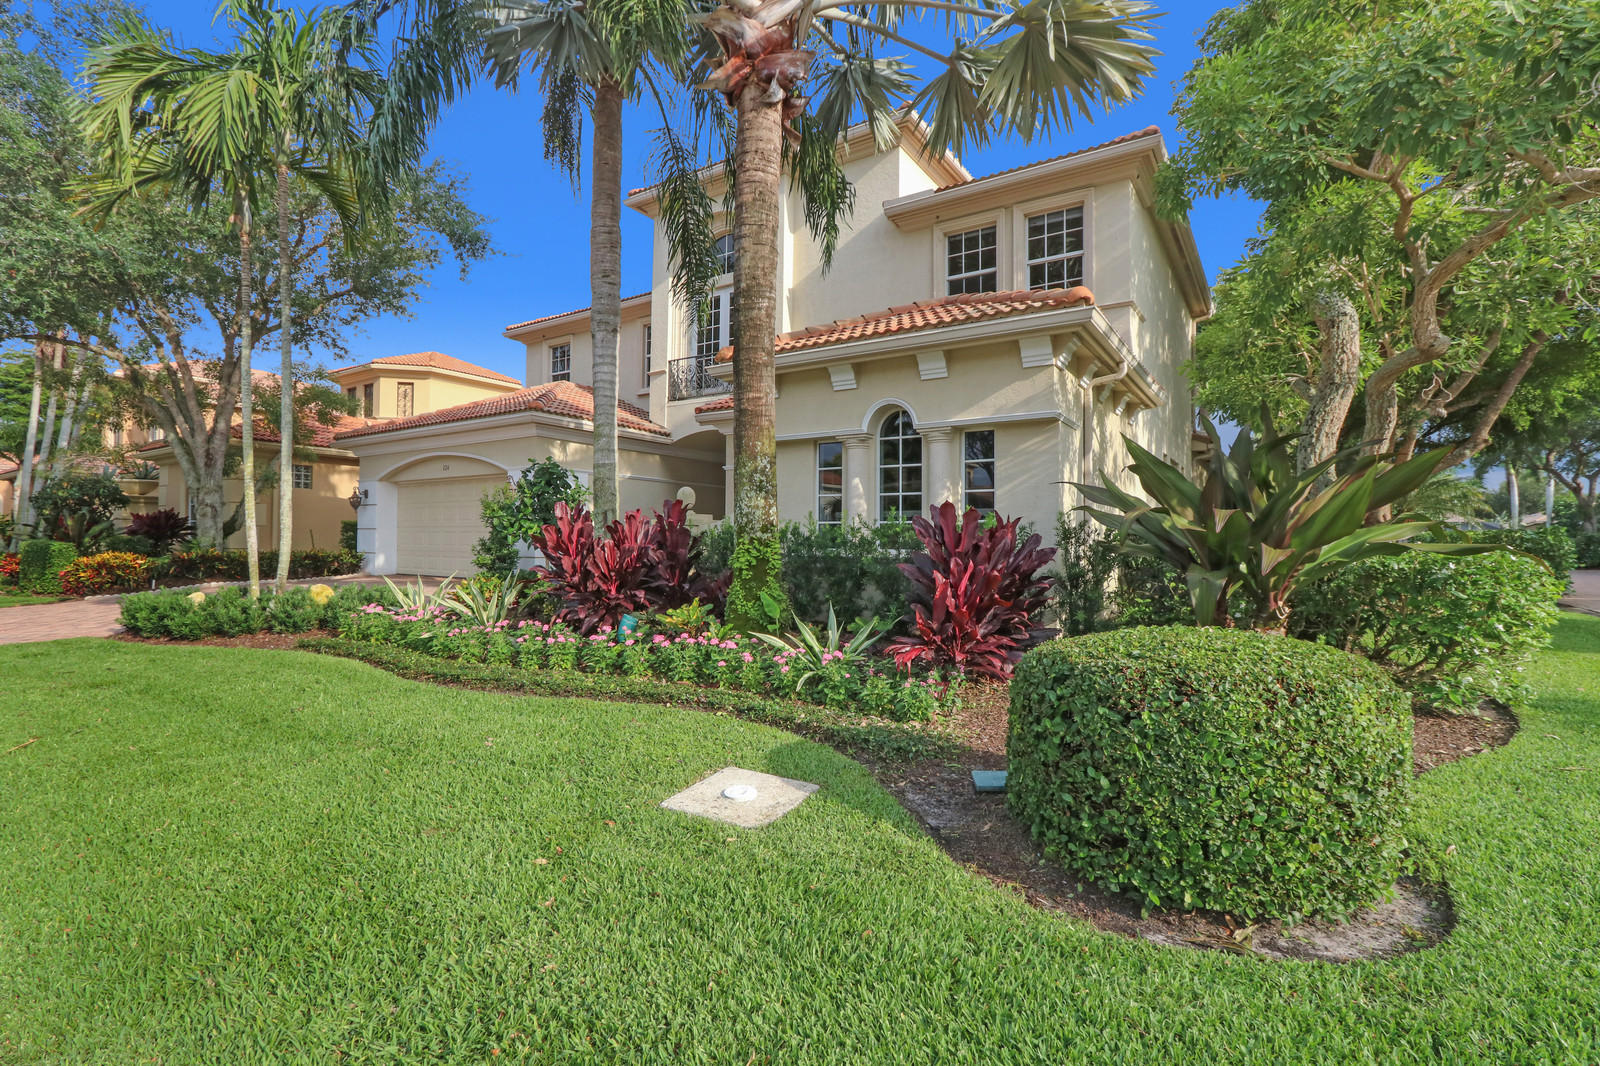 Details for 126 Sunesta Cove Drive, Palm Beach Gardens, FL 33418